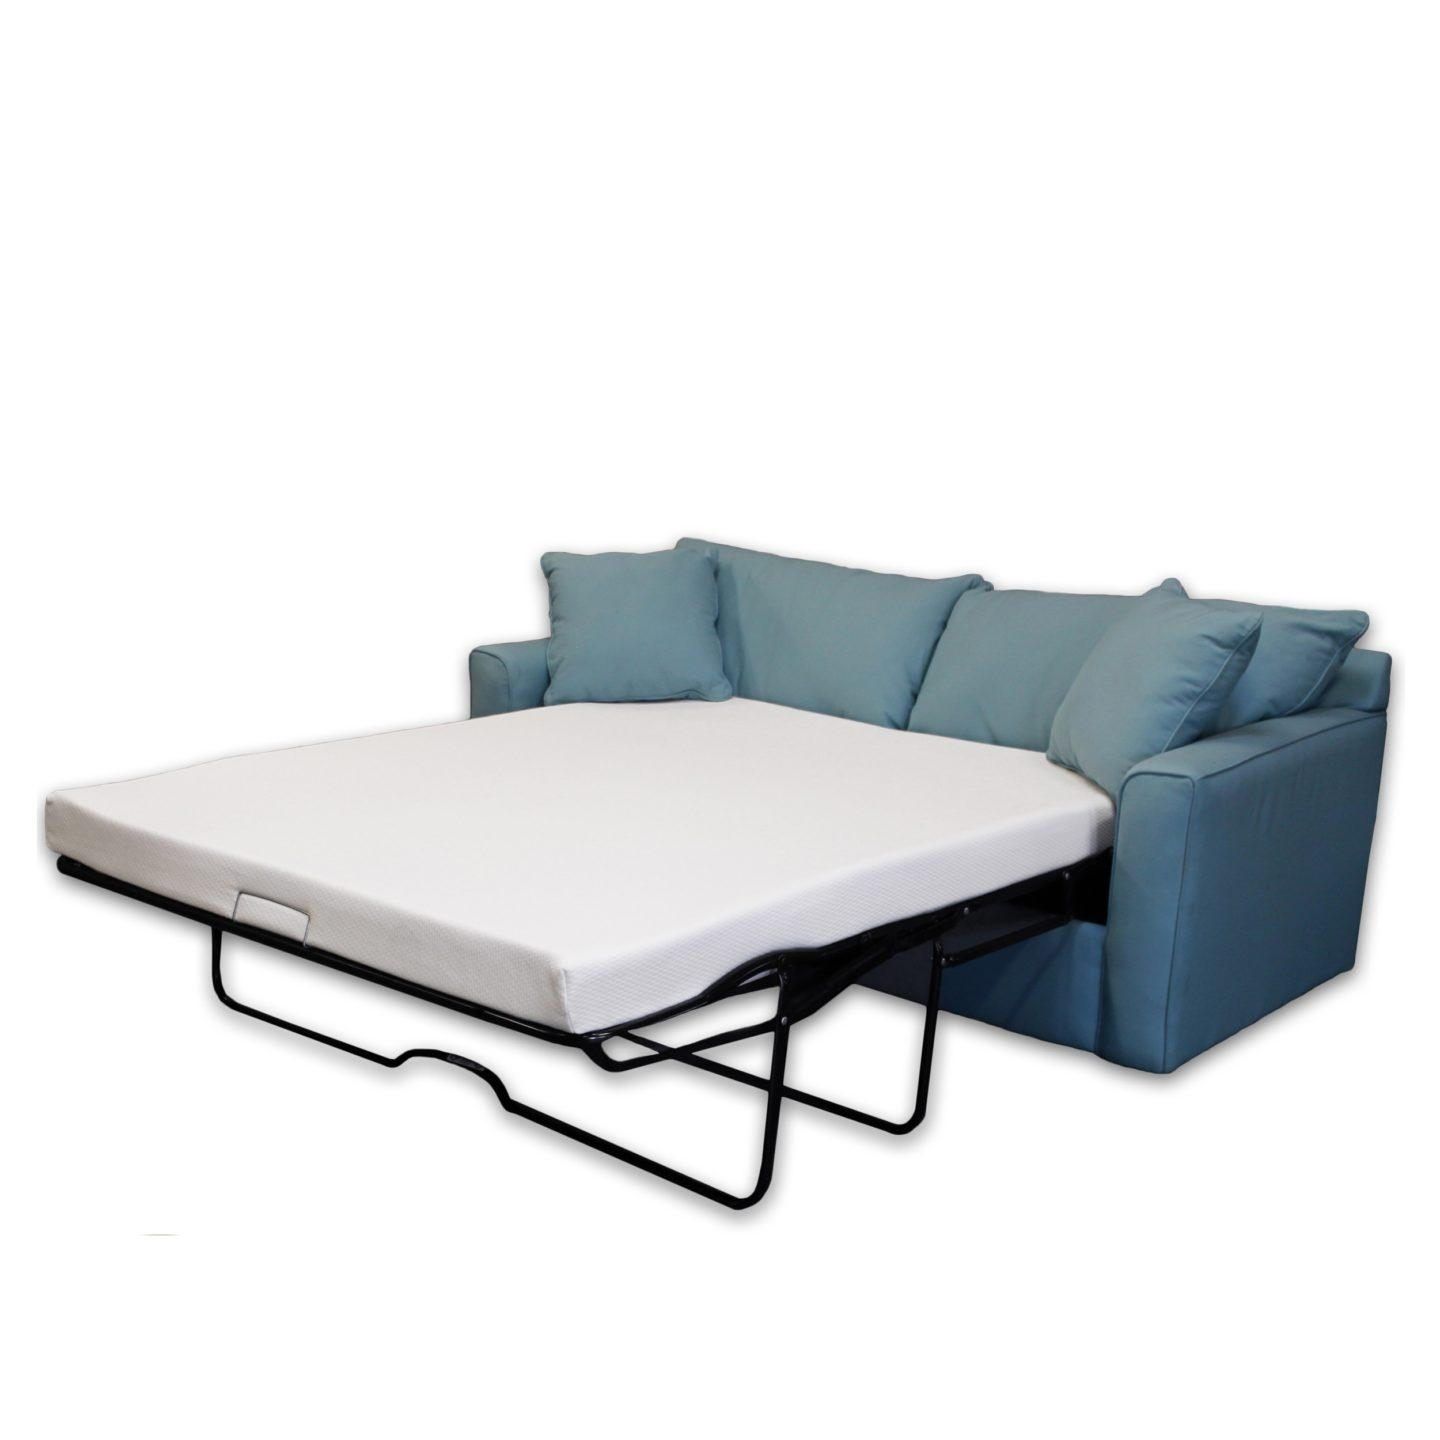 How To Make A Pull Out Sofa Bed More Comfortable – Overstock Throughout Sofa Beds With Mattress Support (View 13 of 20)